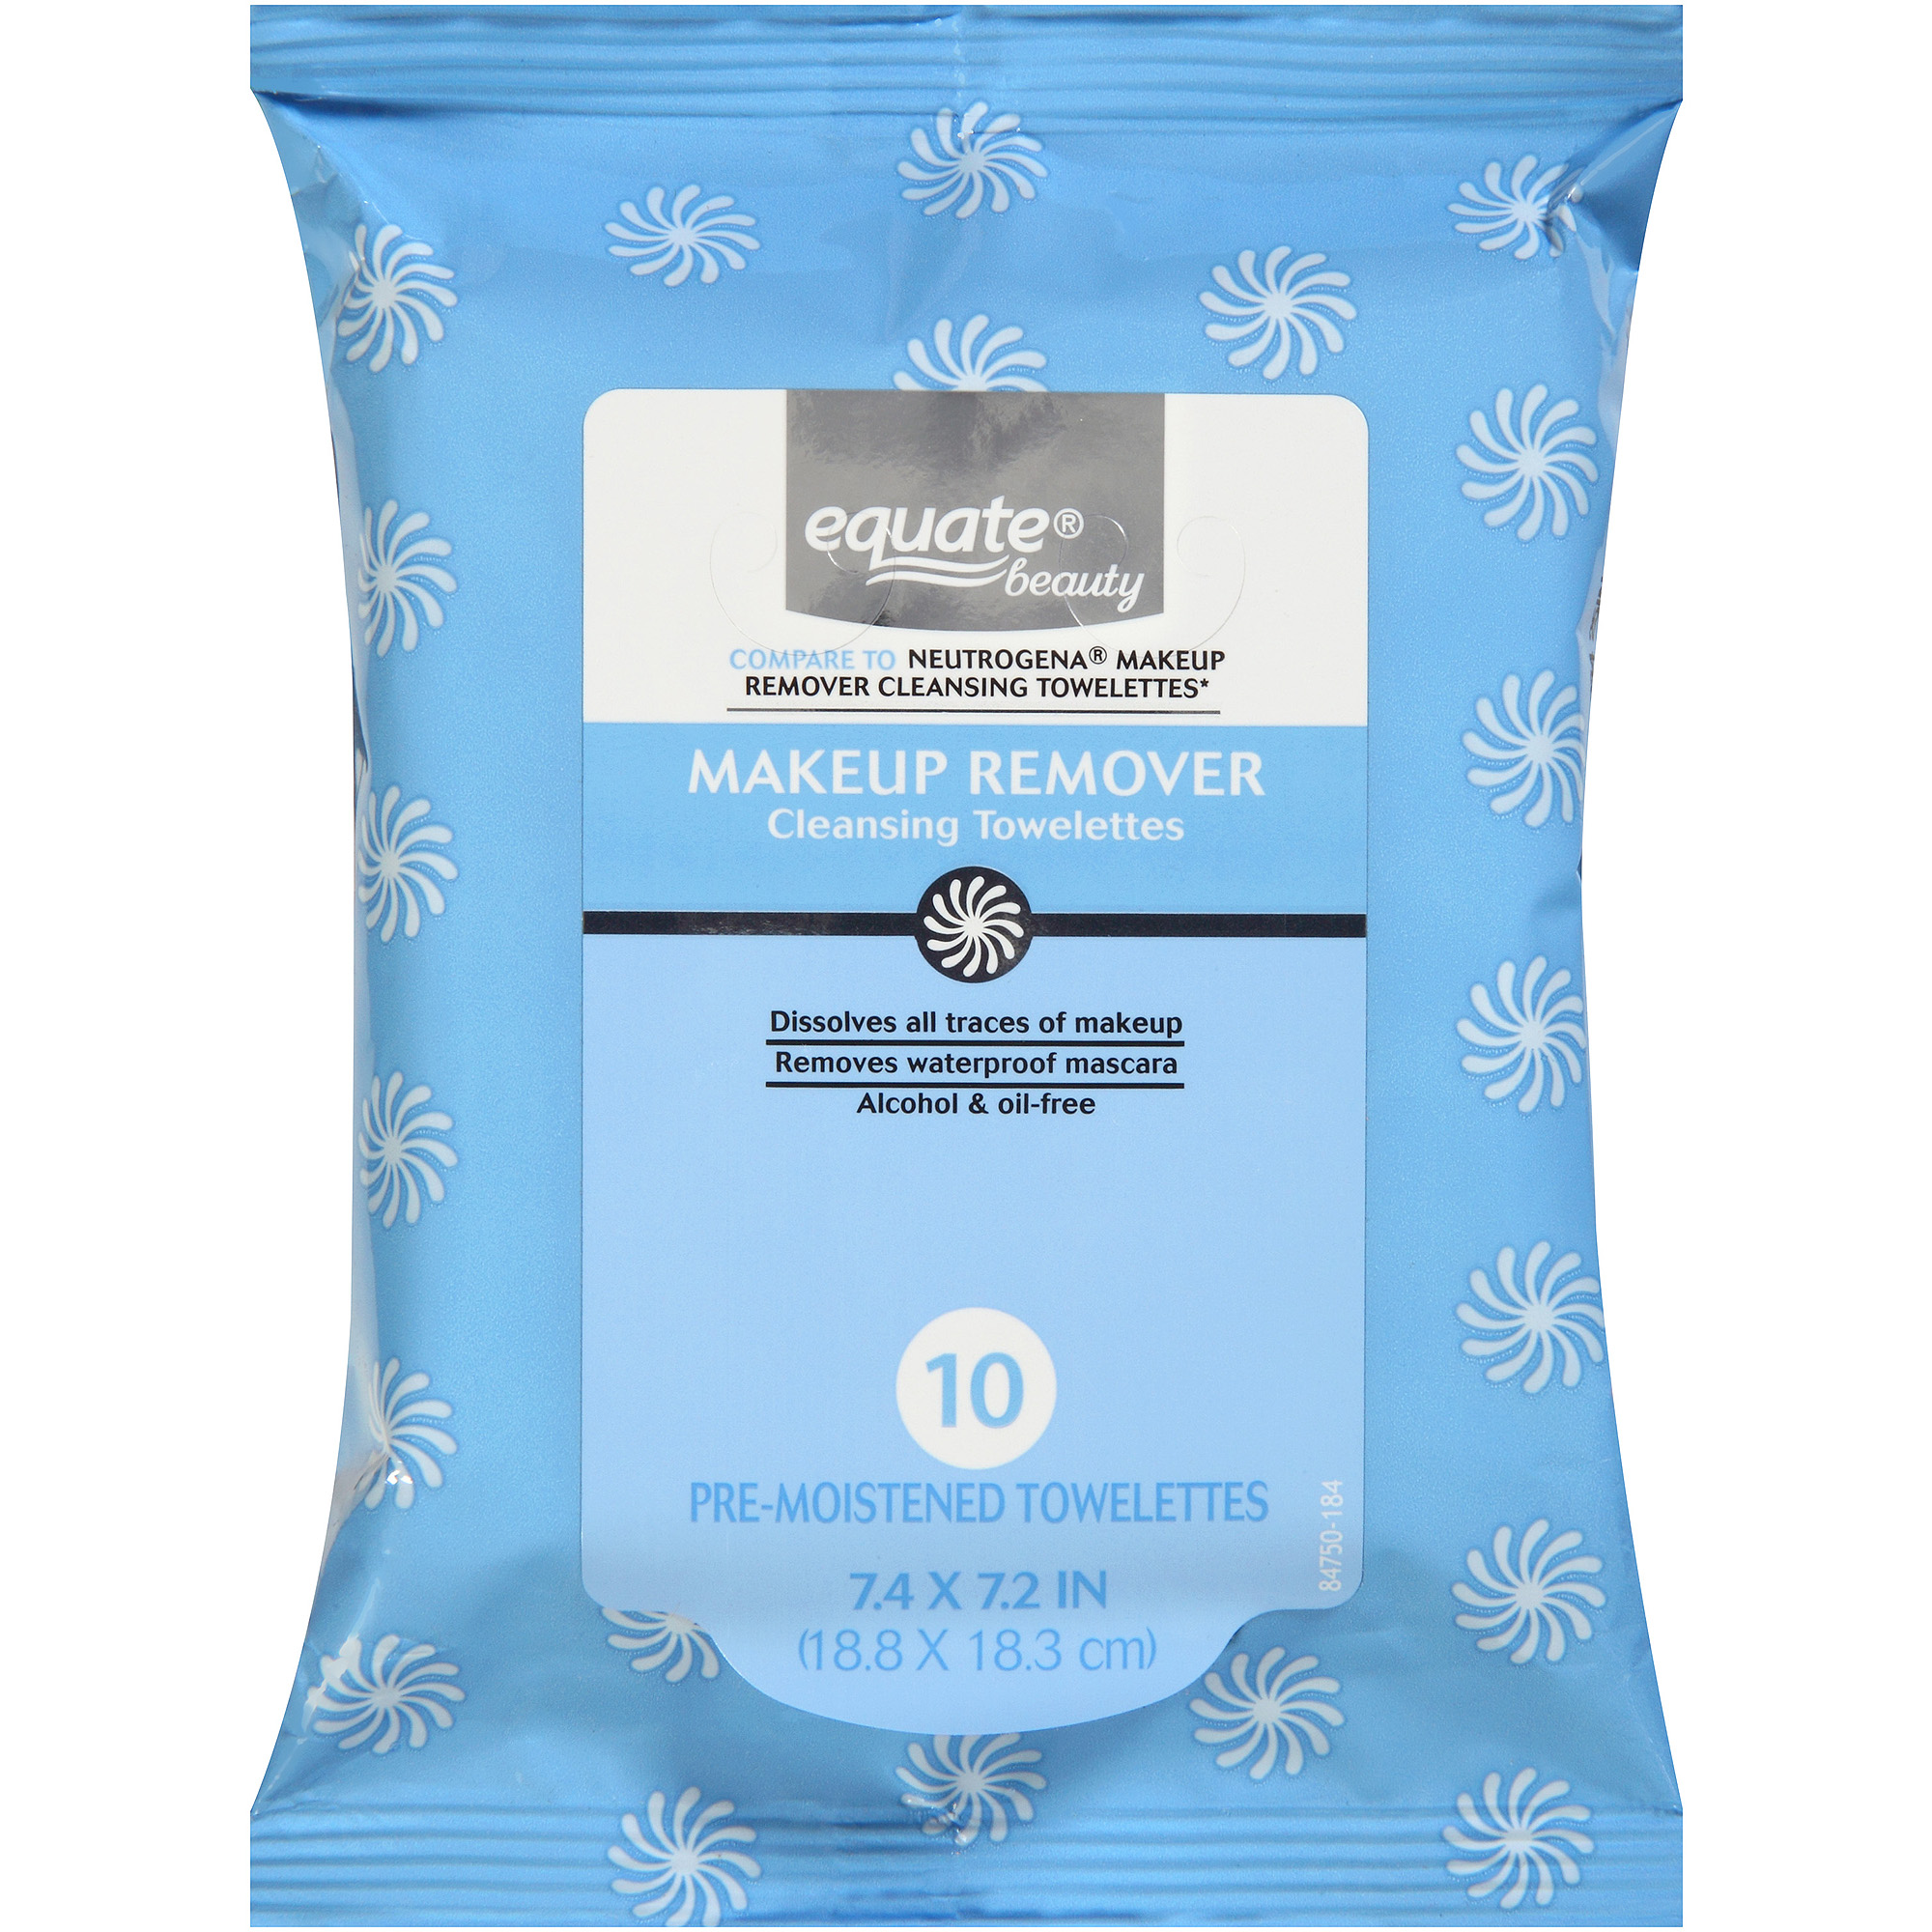 Equate Beauty Makeup Remover Cleansing Towelettes, 10 sheets